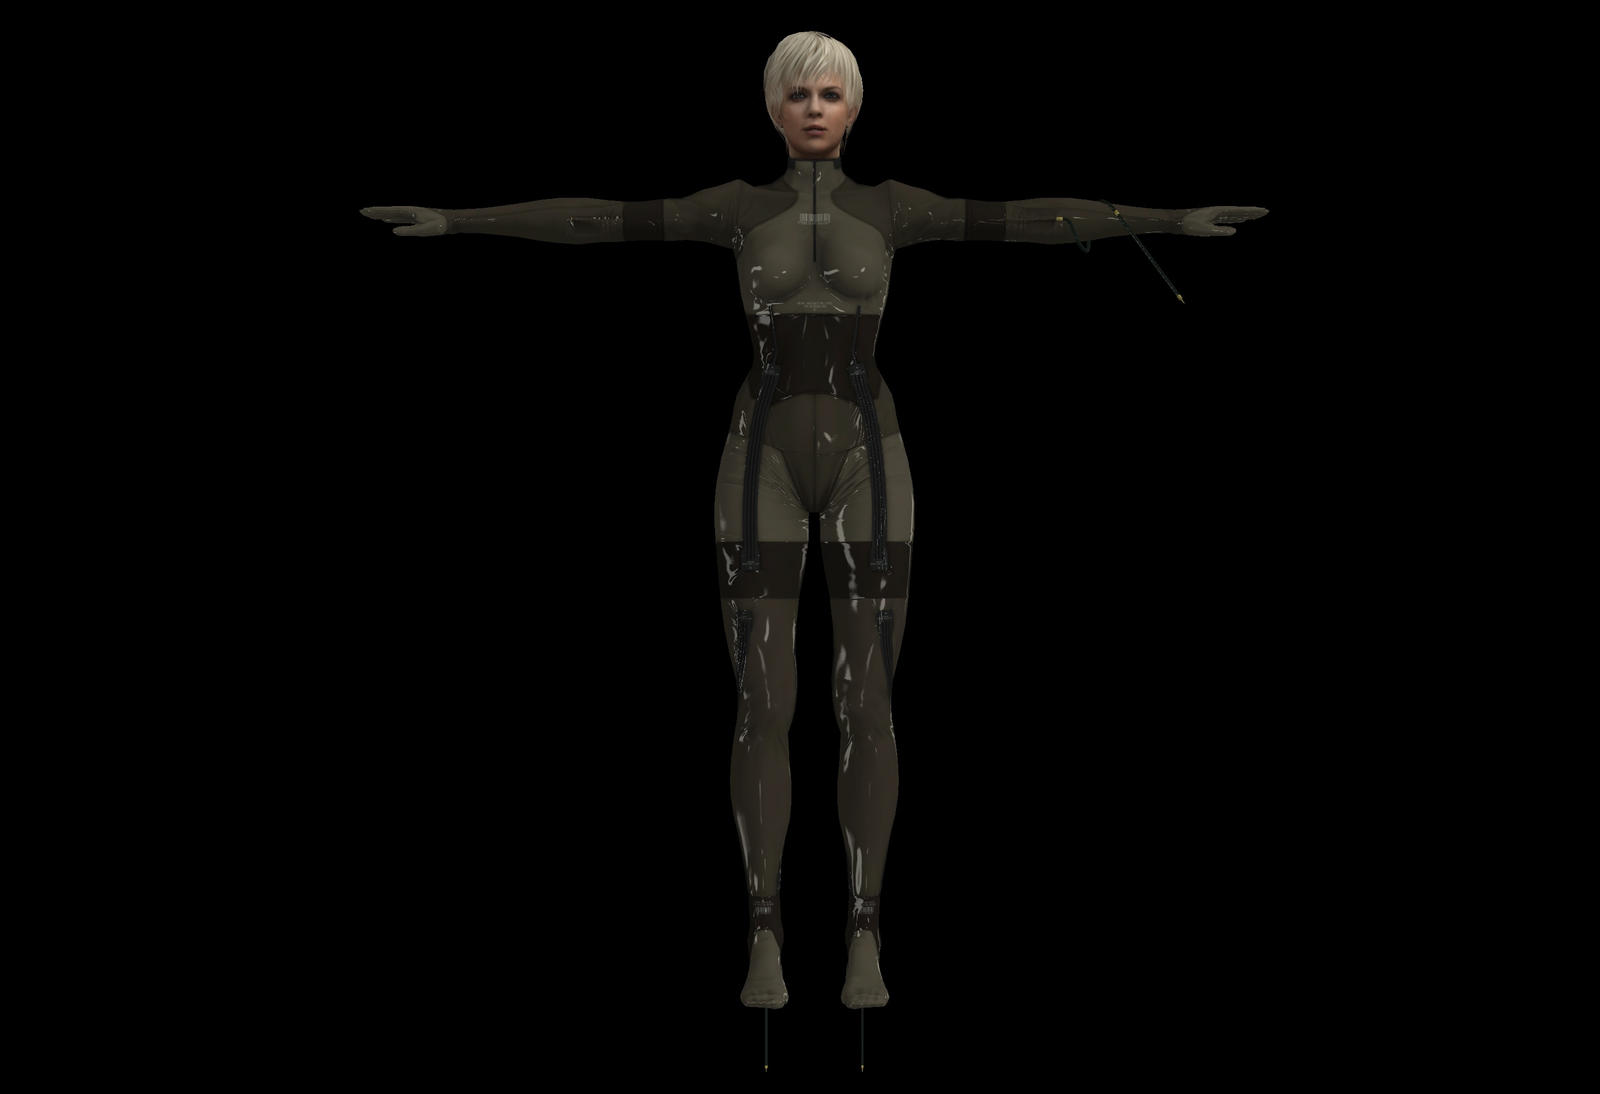 Metal Gear Solid 4 3d Models Fnaf - staffpt